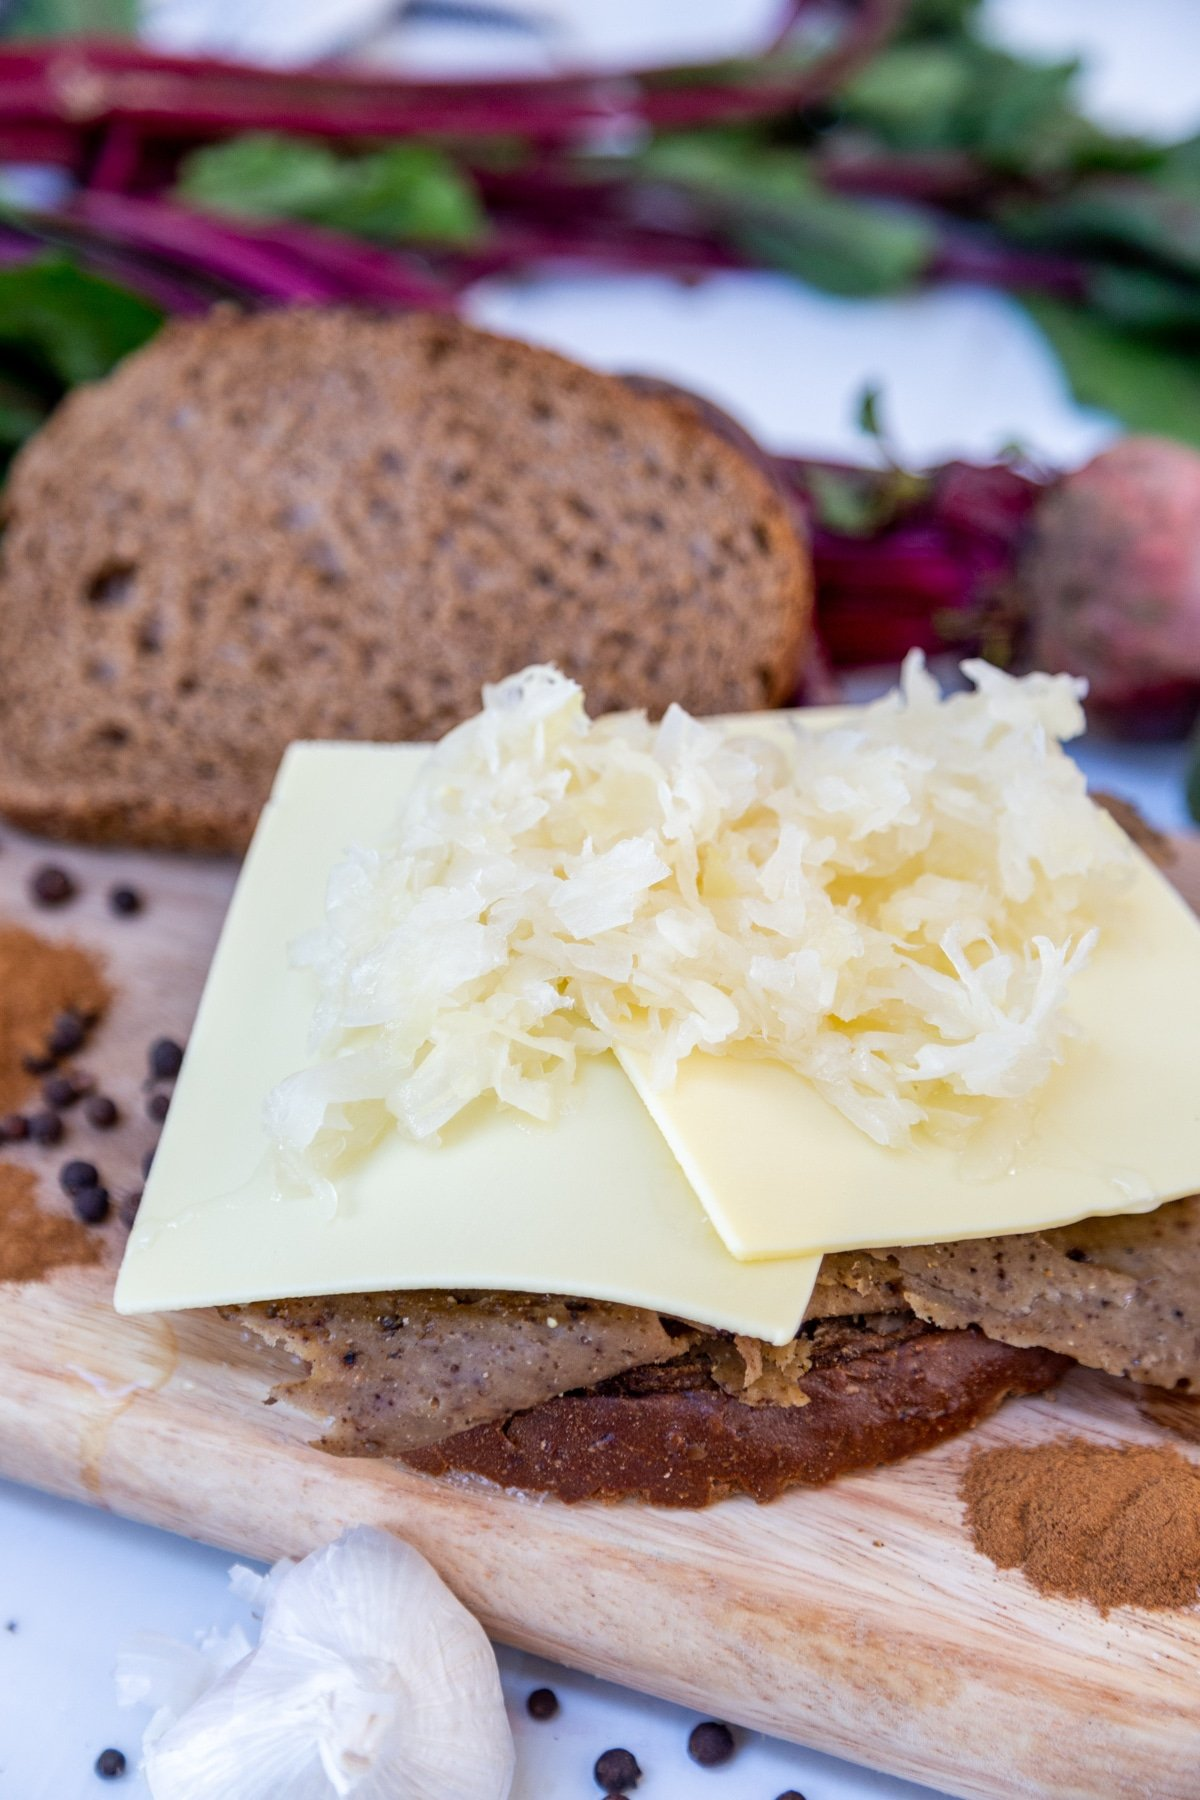 A slice of bread with corned beef, cheese, and sauerkraut.